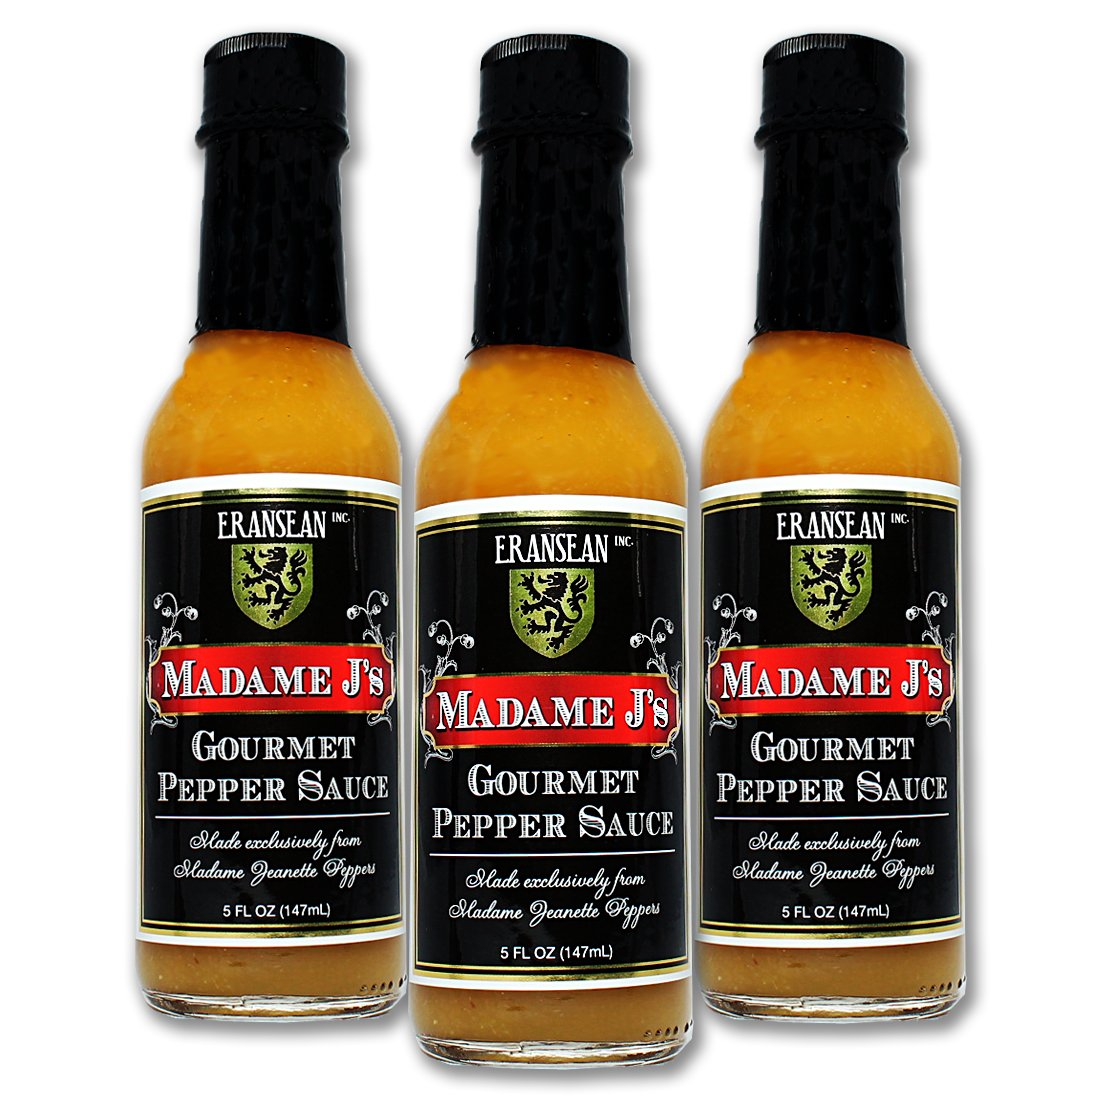 ERANSEAN Madame J's Gourmet Pepper Sauce – 3 pack/made from exclusively grown Madame Jeanette Peppers/natural unique flavor and heat/gluten free/shake bottle – 3-5 Fl. Oz. bottles